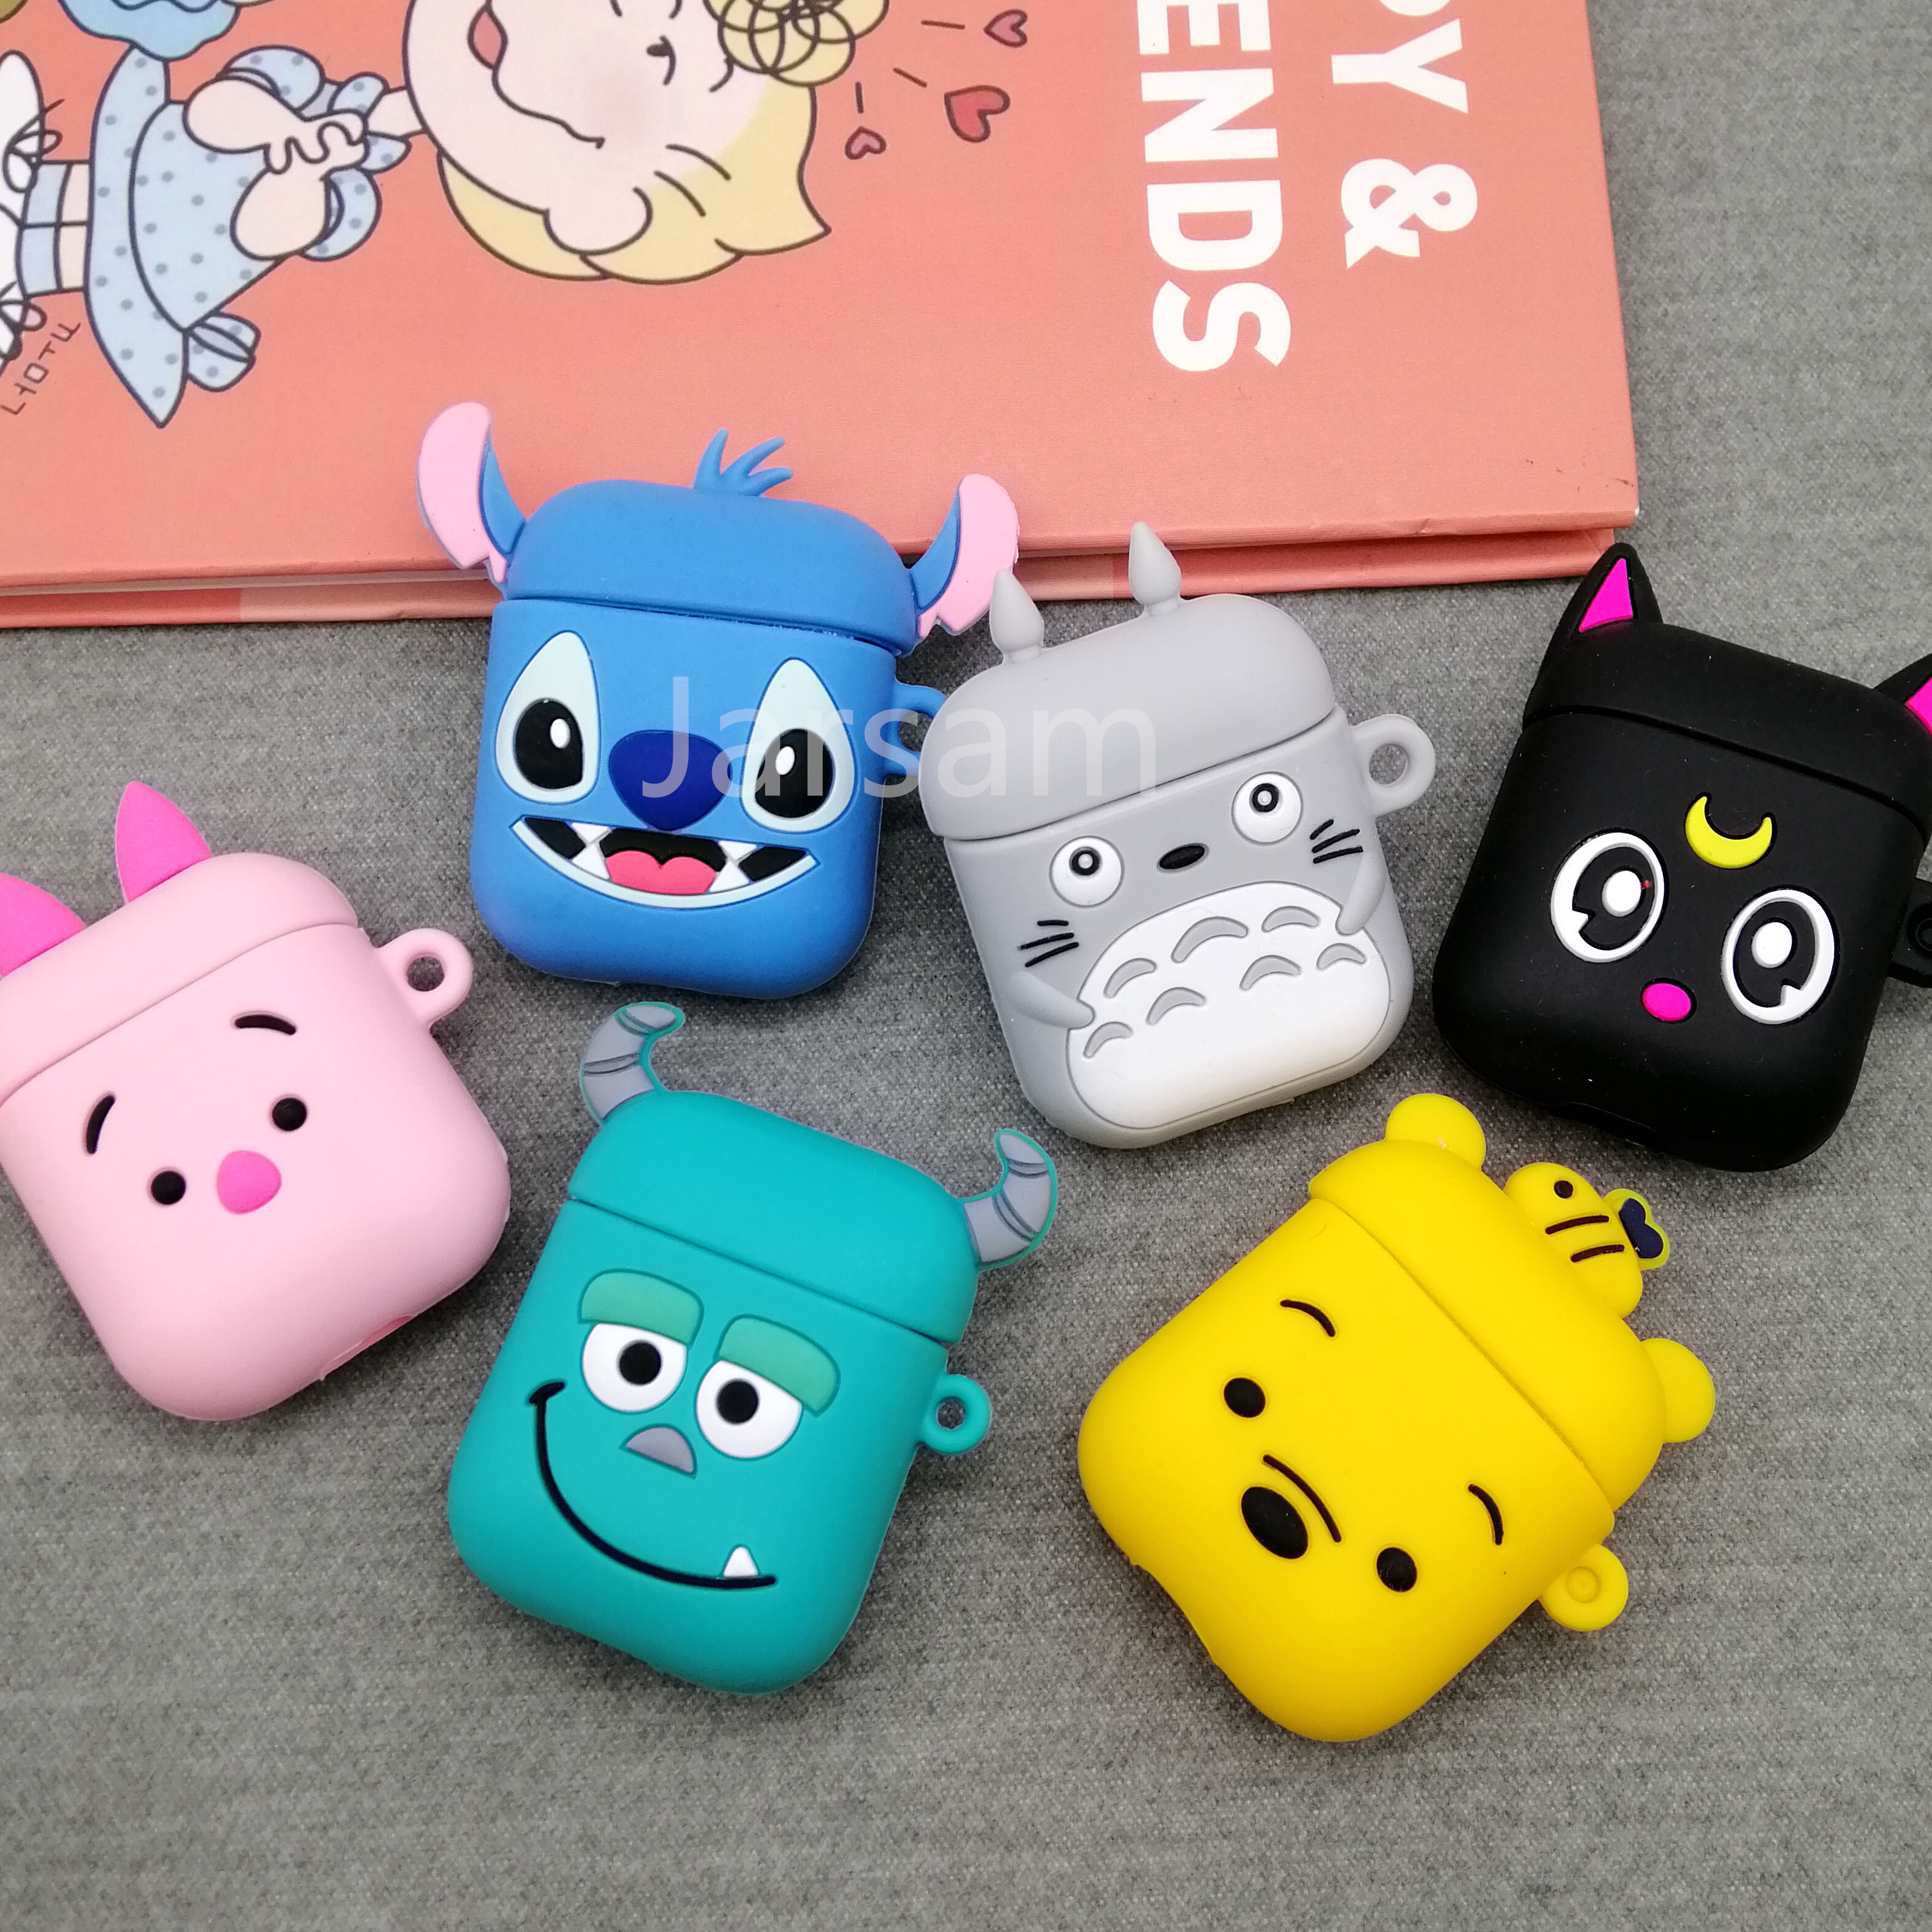 Cases For Apple AirPods 2 Soft Cartoon Avocado Strawberry Earphone Case For Air Pods 1 Charging Box Cover For Airpods With Hook